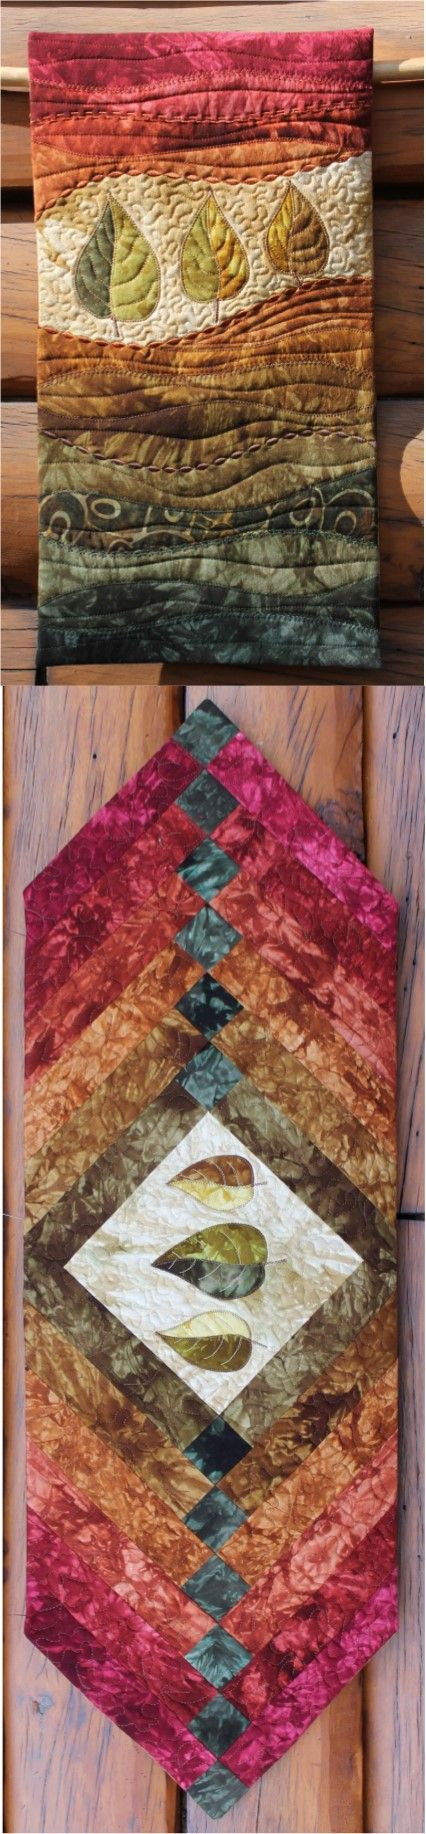 Autumn Leaves table runner and wall hanging kits now available